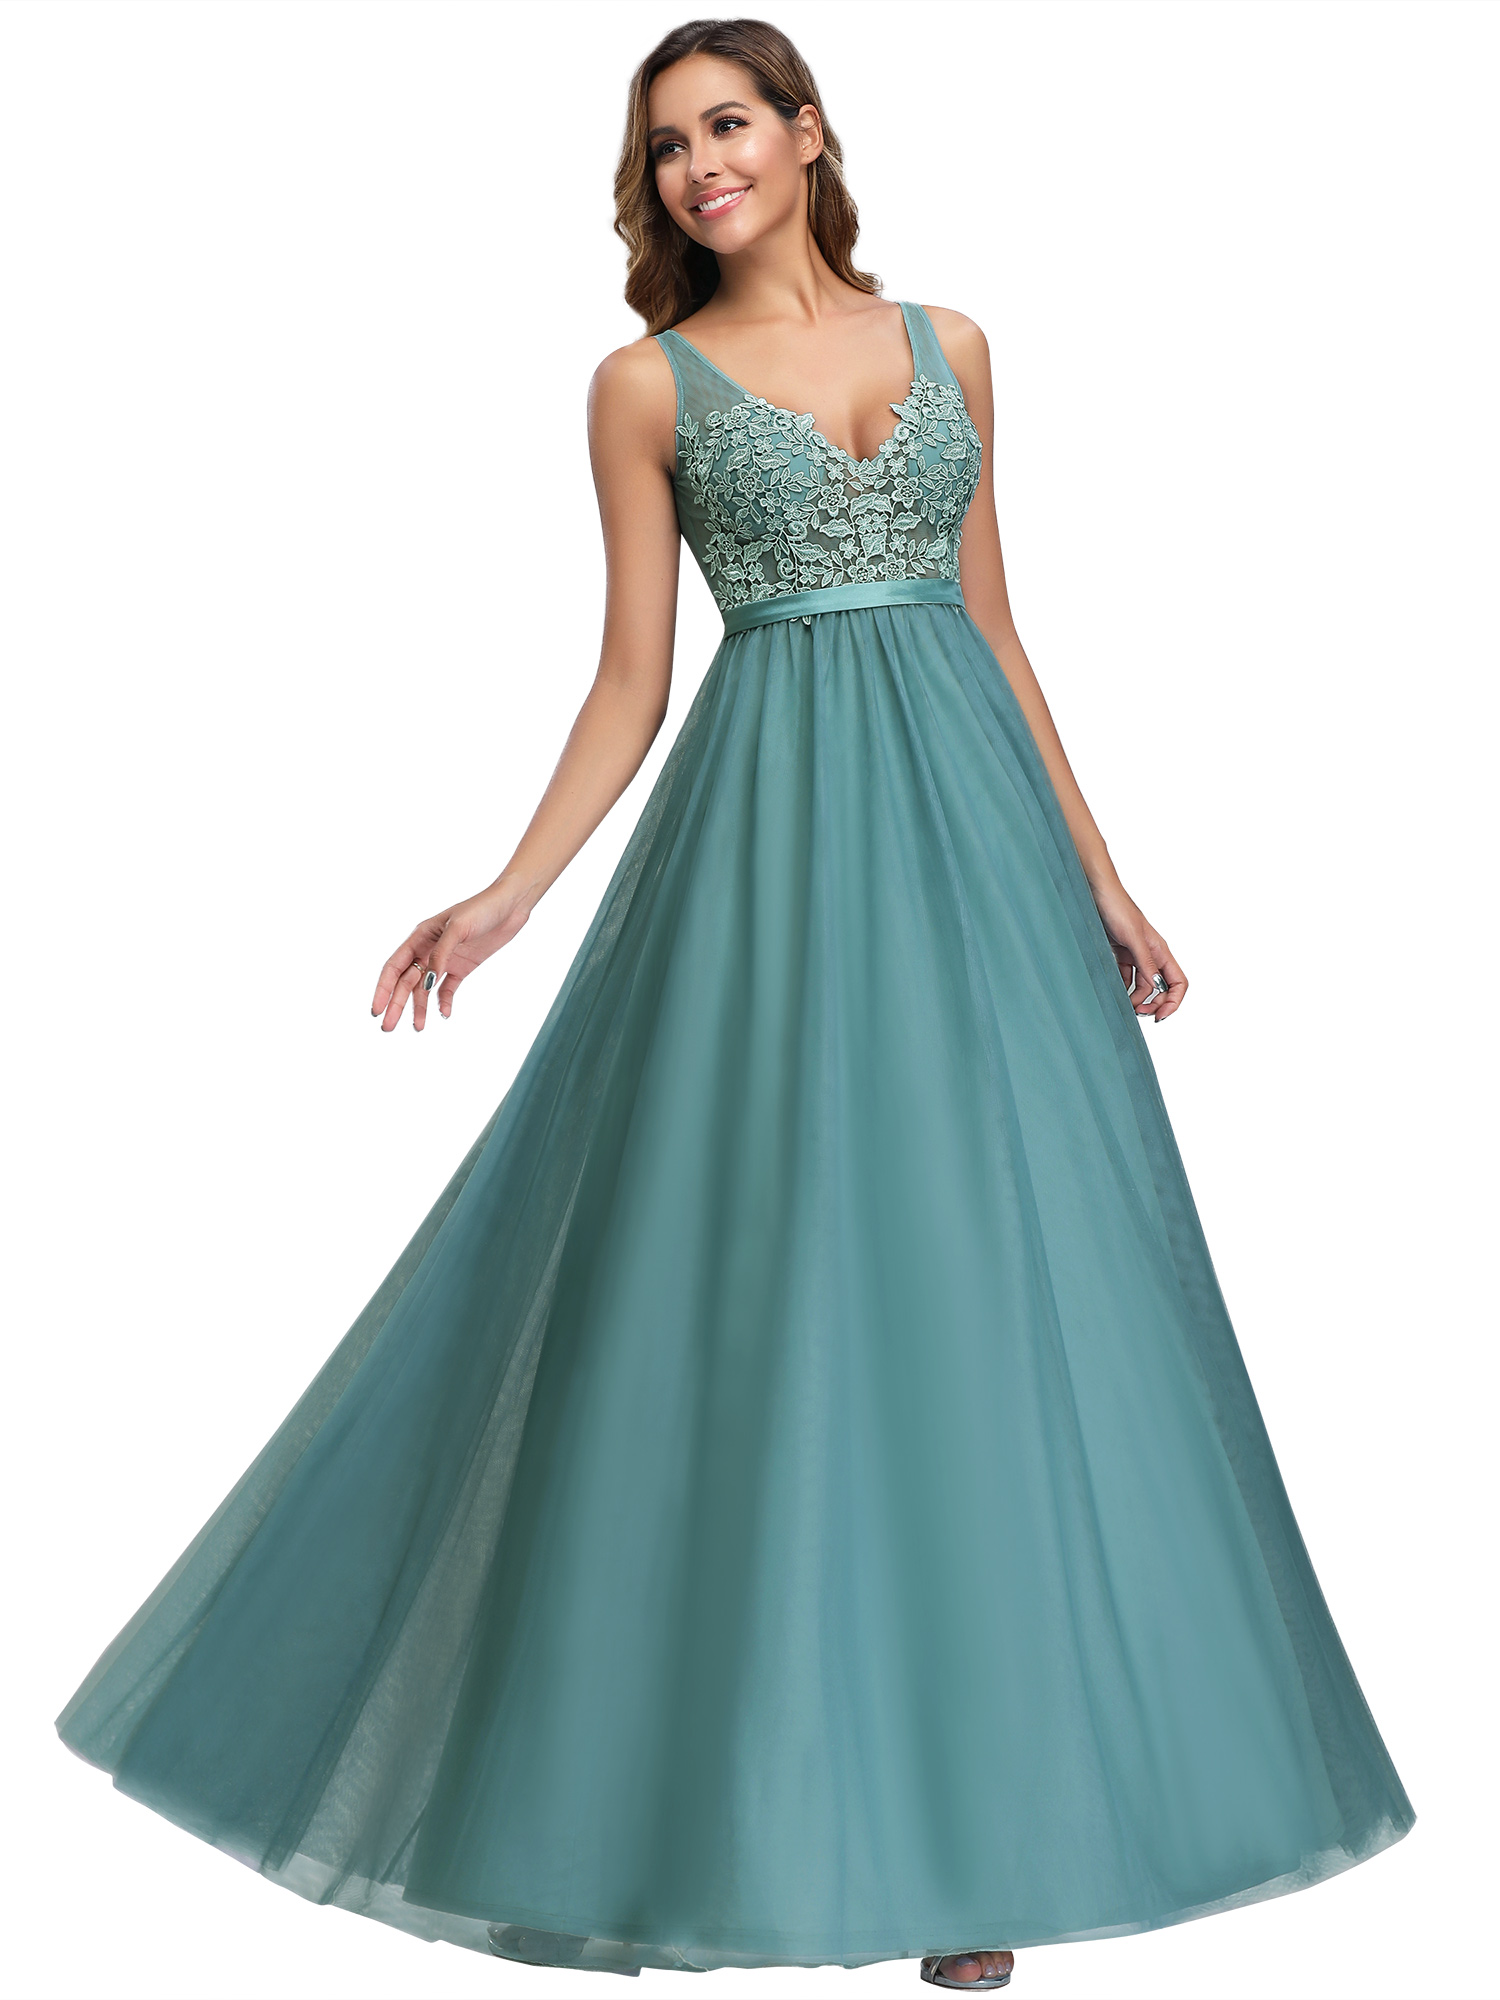 Ever-pretty-Formal-V-neck-Celebrity-Prom-Gown-Long-Evening-A-line-Cocktail-Dress thumbnail 4